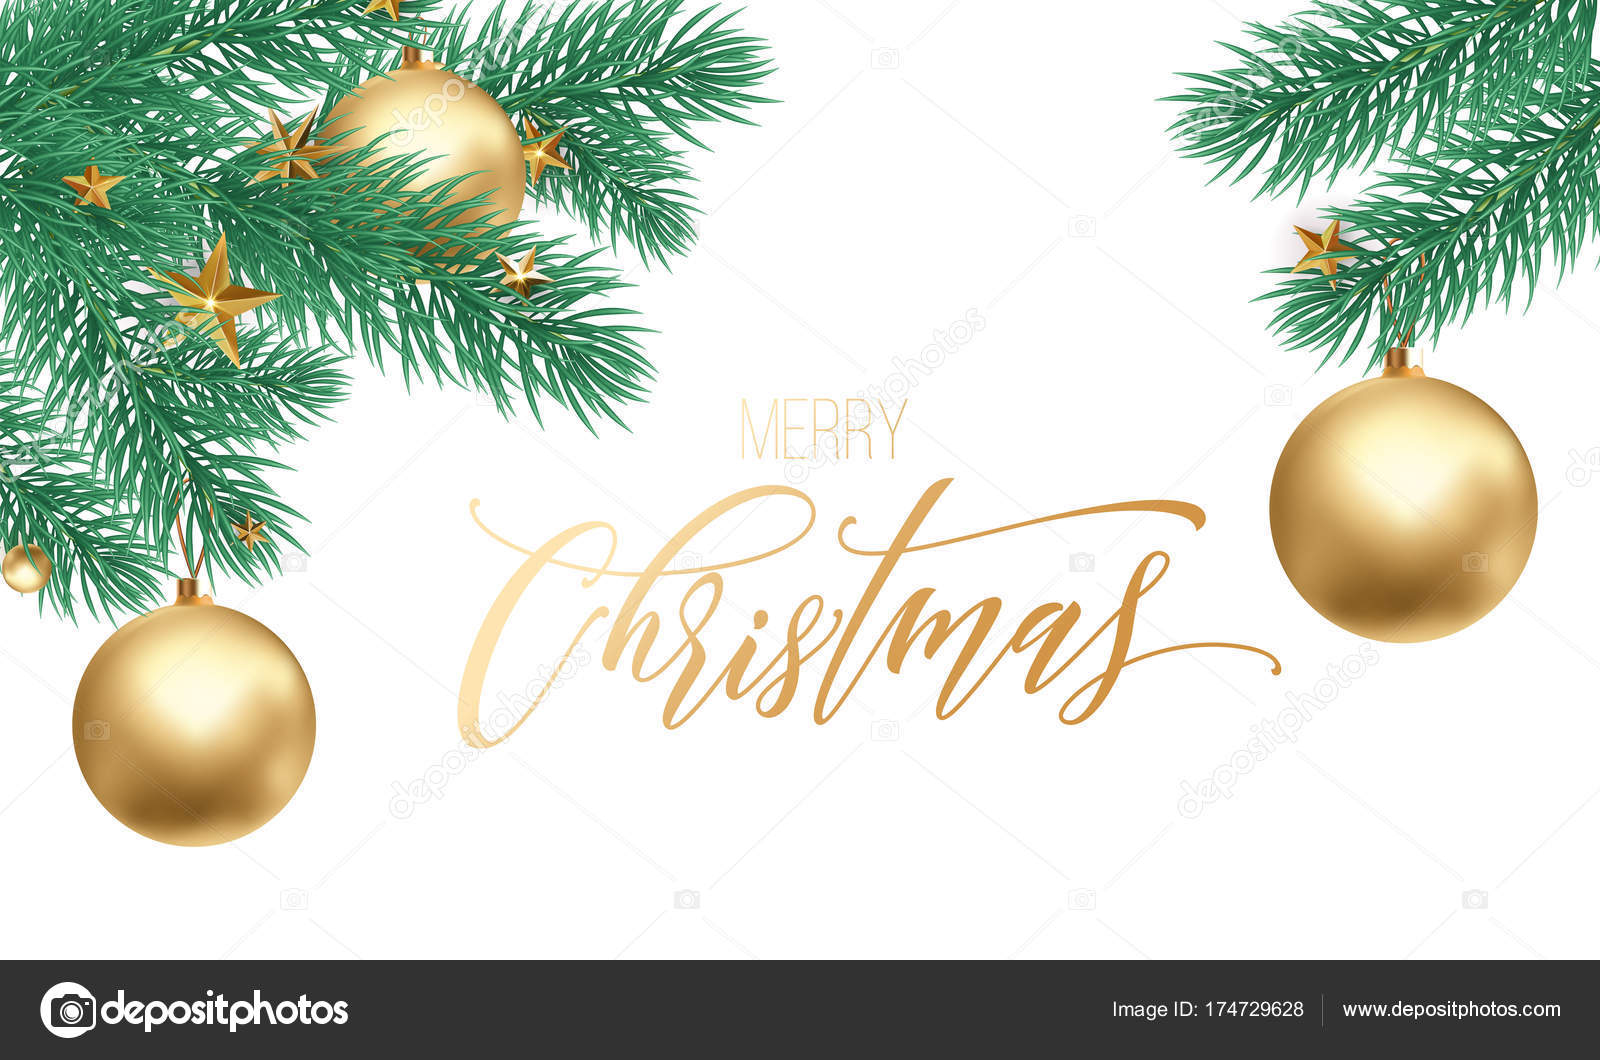 Merry Christmas holiday hand drawn quote golden calligraphy greeting ...